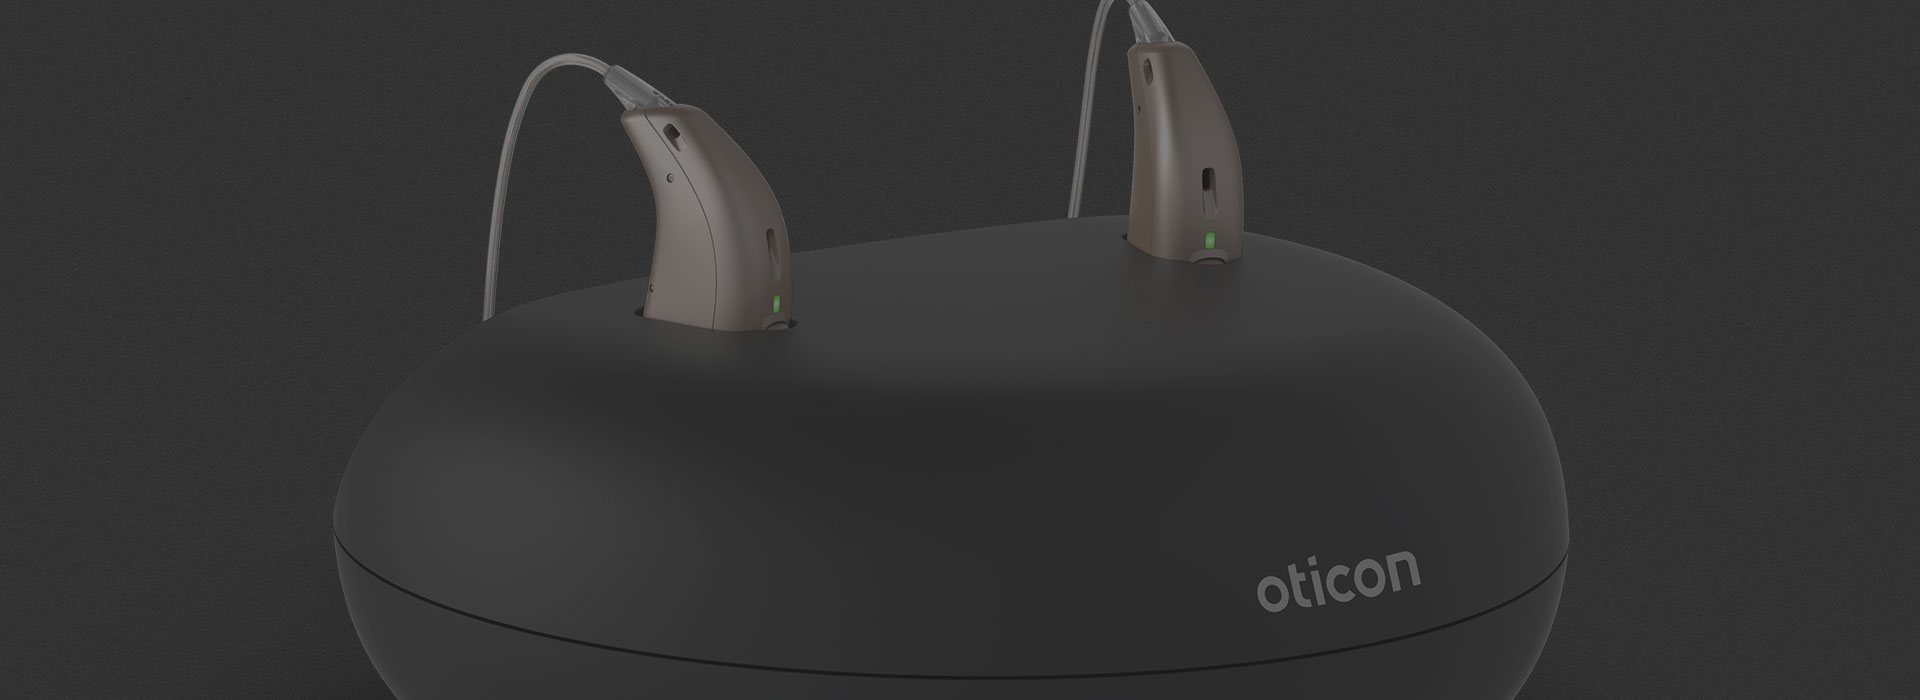 bte-opns-rechargeable-hearing-aids